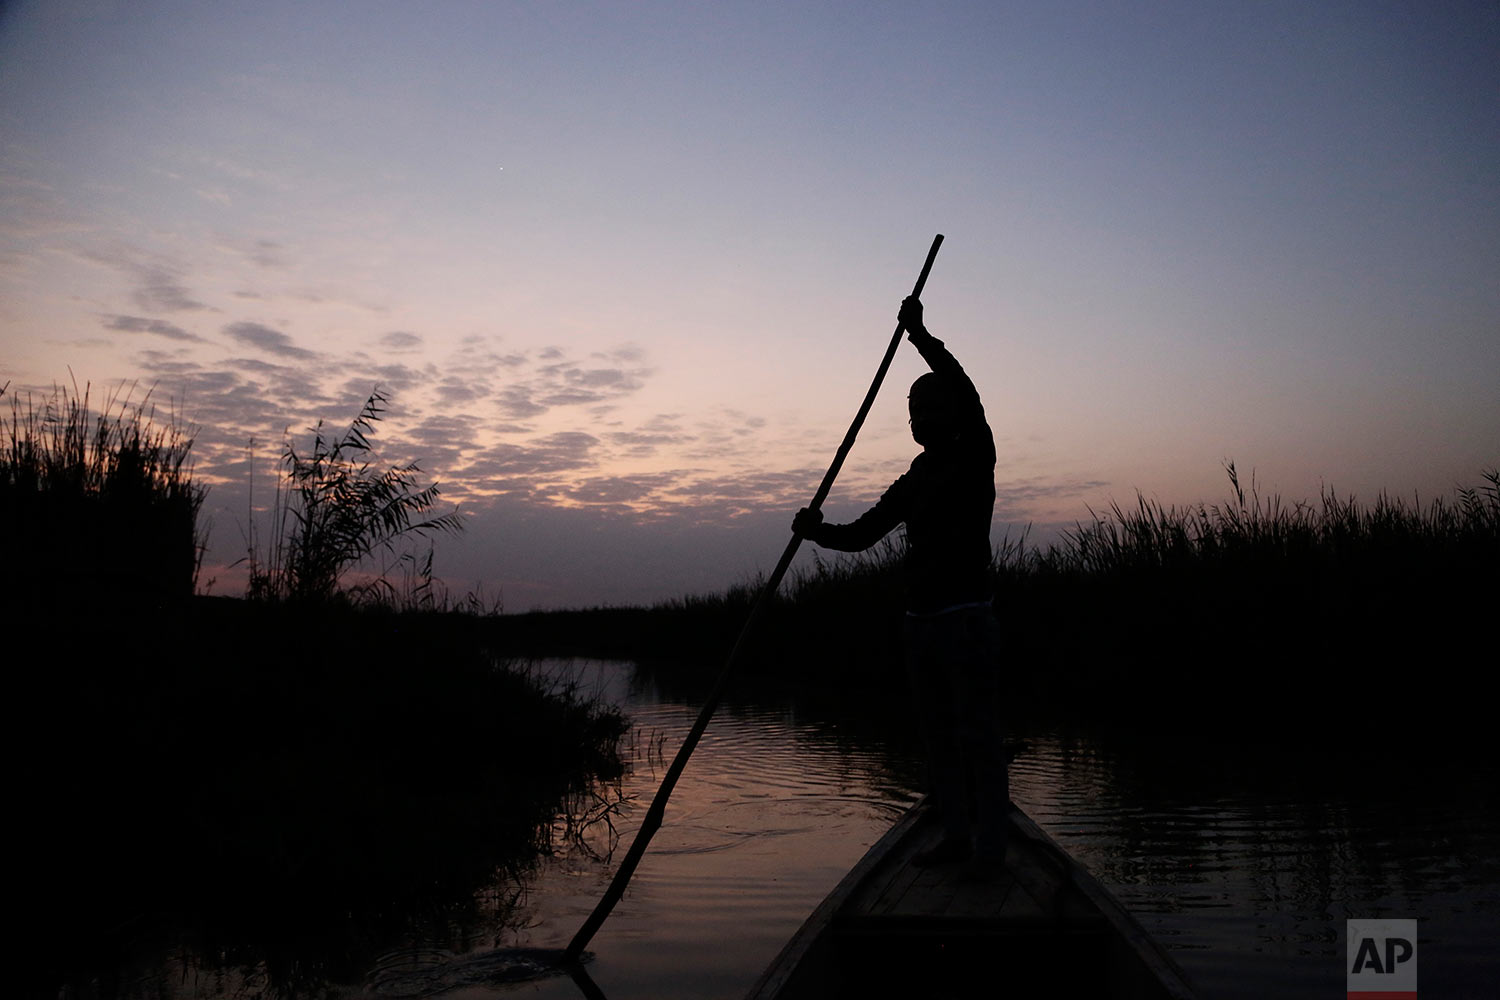 In this Sept. 11, 2017 photo, a fisherman paddles through Iraq's southern marshes at dawn in Chabaish, Iraq. The wetlands are the largest in the Middle East and after surviving bombings and draining at the hands of former leader Saddam Hussein, the fragile ecosystem is imperiled again, by government mismanagement and new upstream projects. (AP Photo/Susannah George)